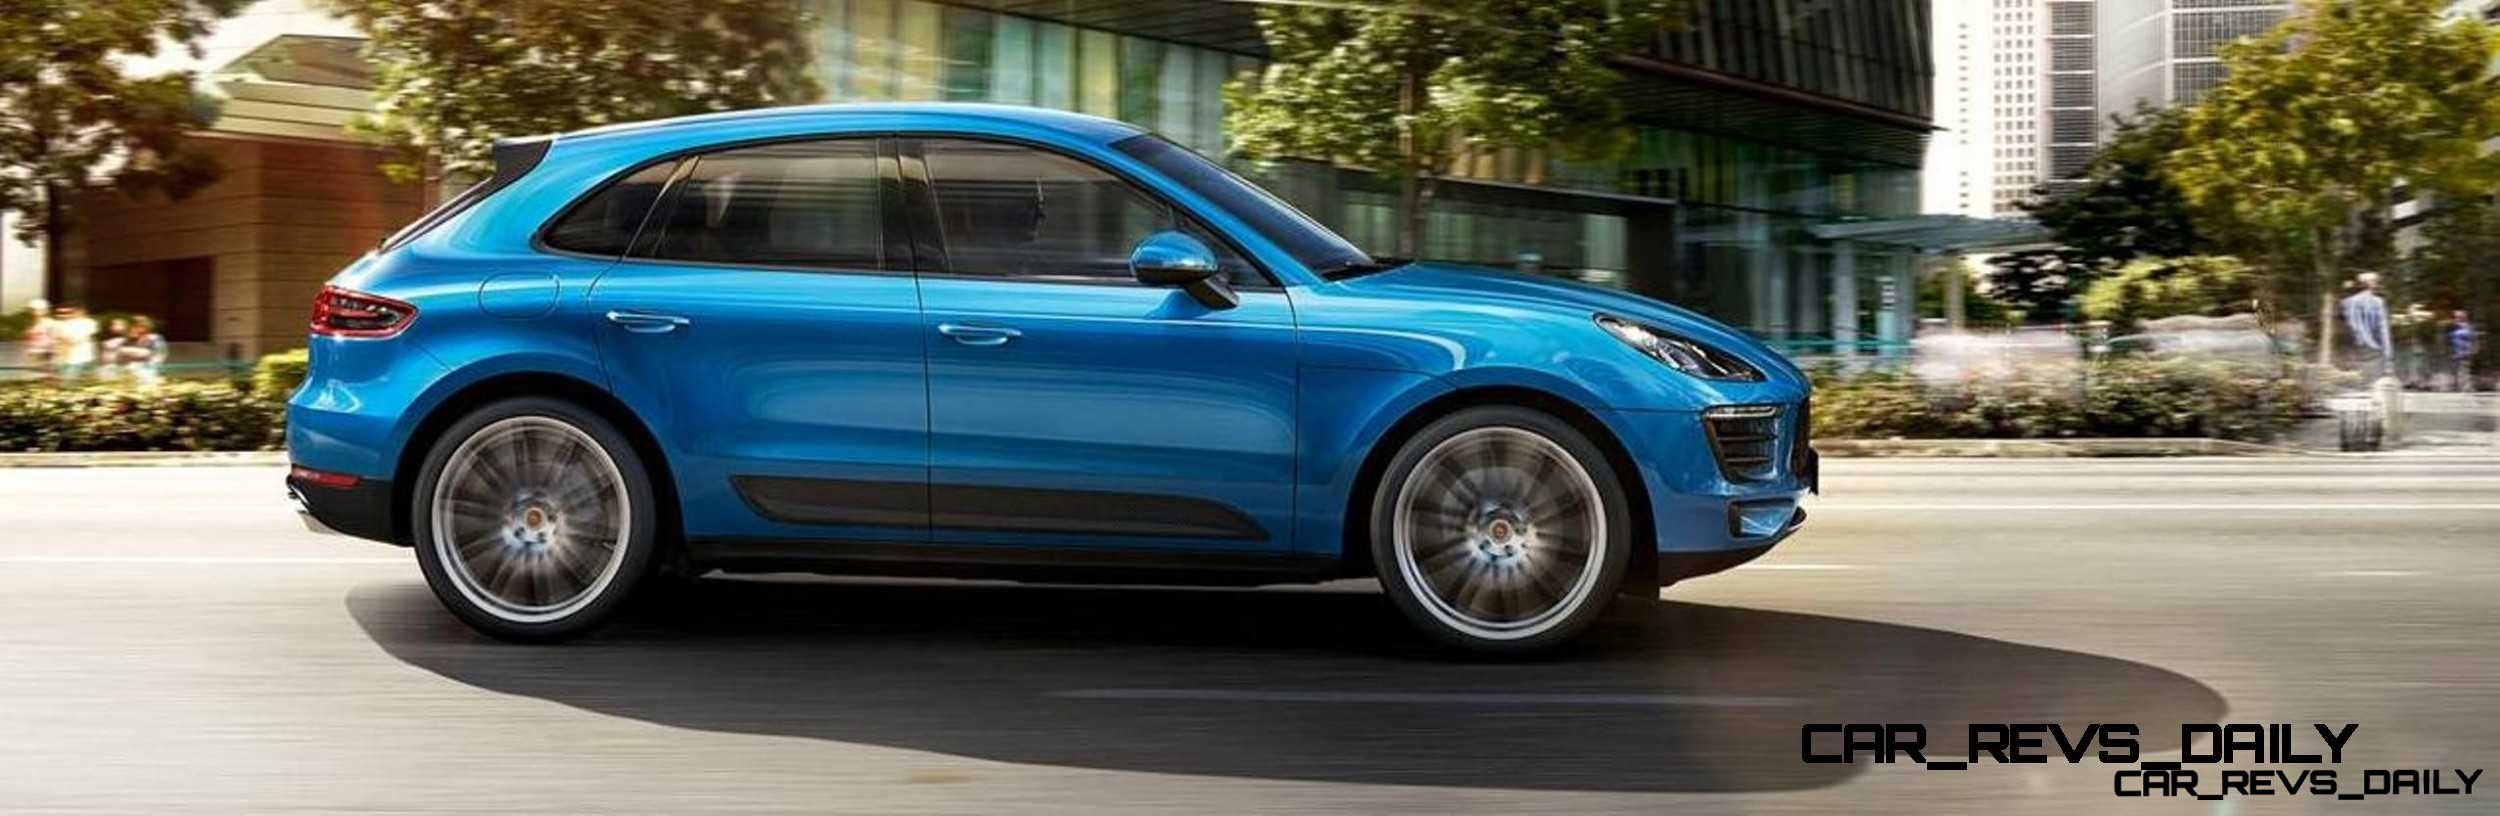 2015 Porsche Macan - Latest Images - CarRevsDaily.com 45